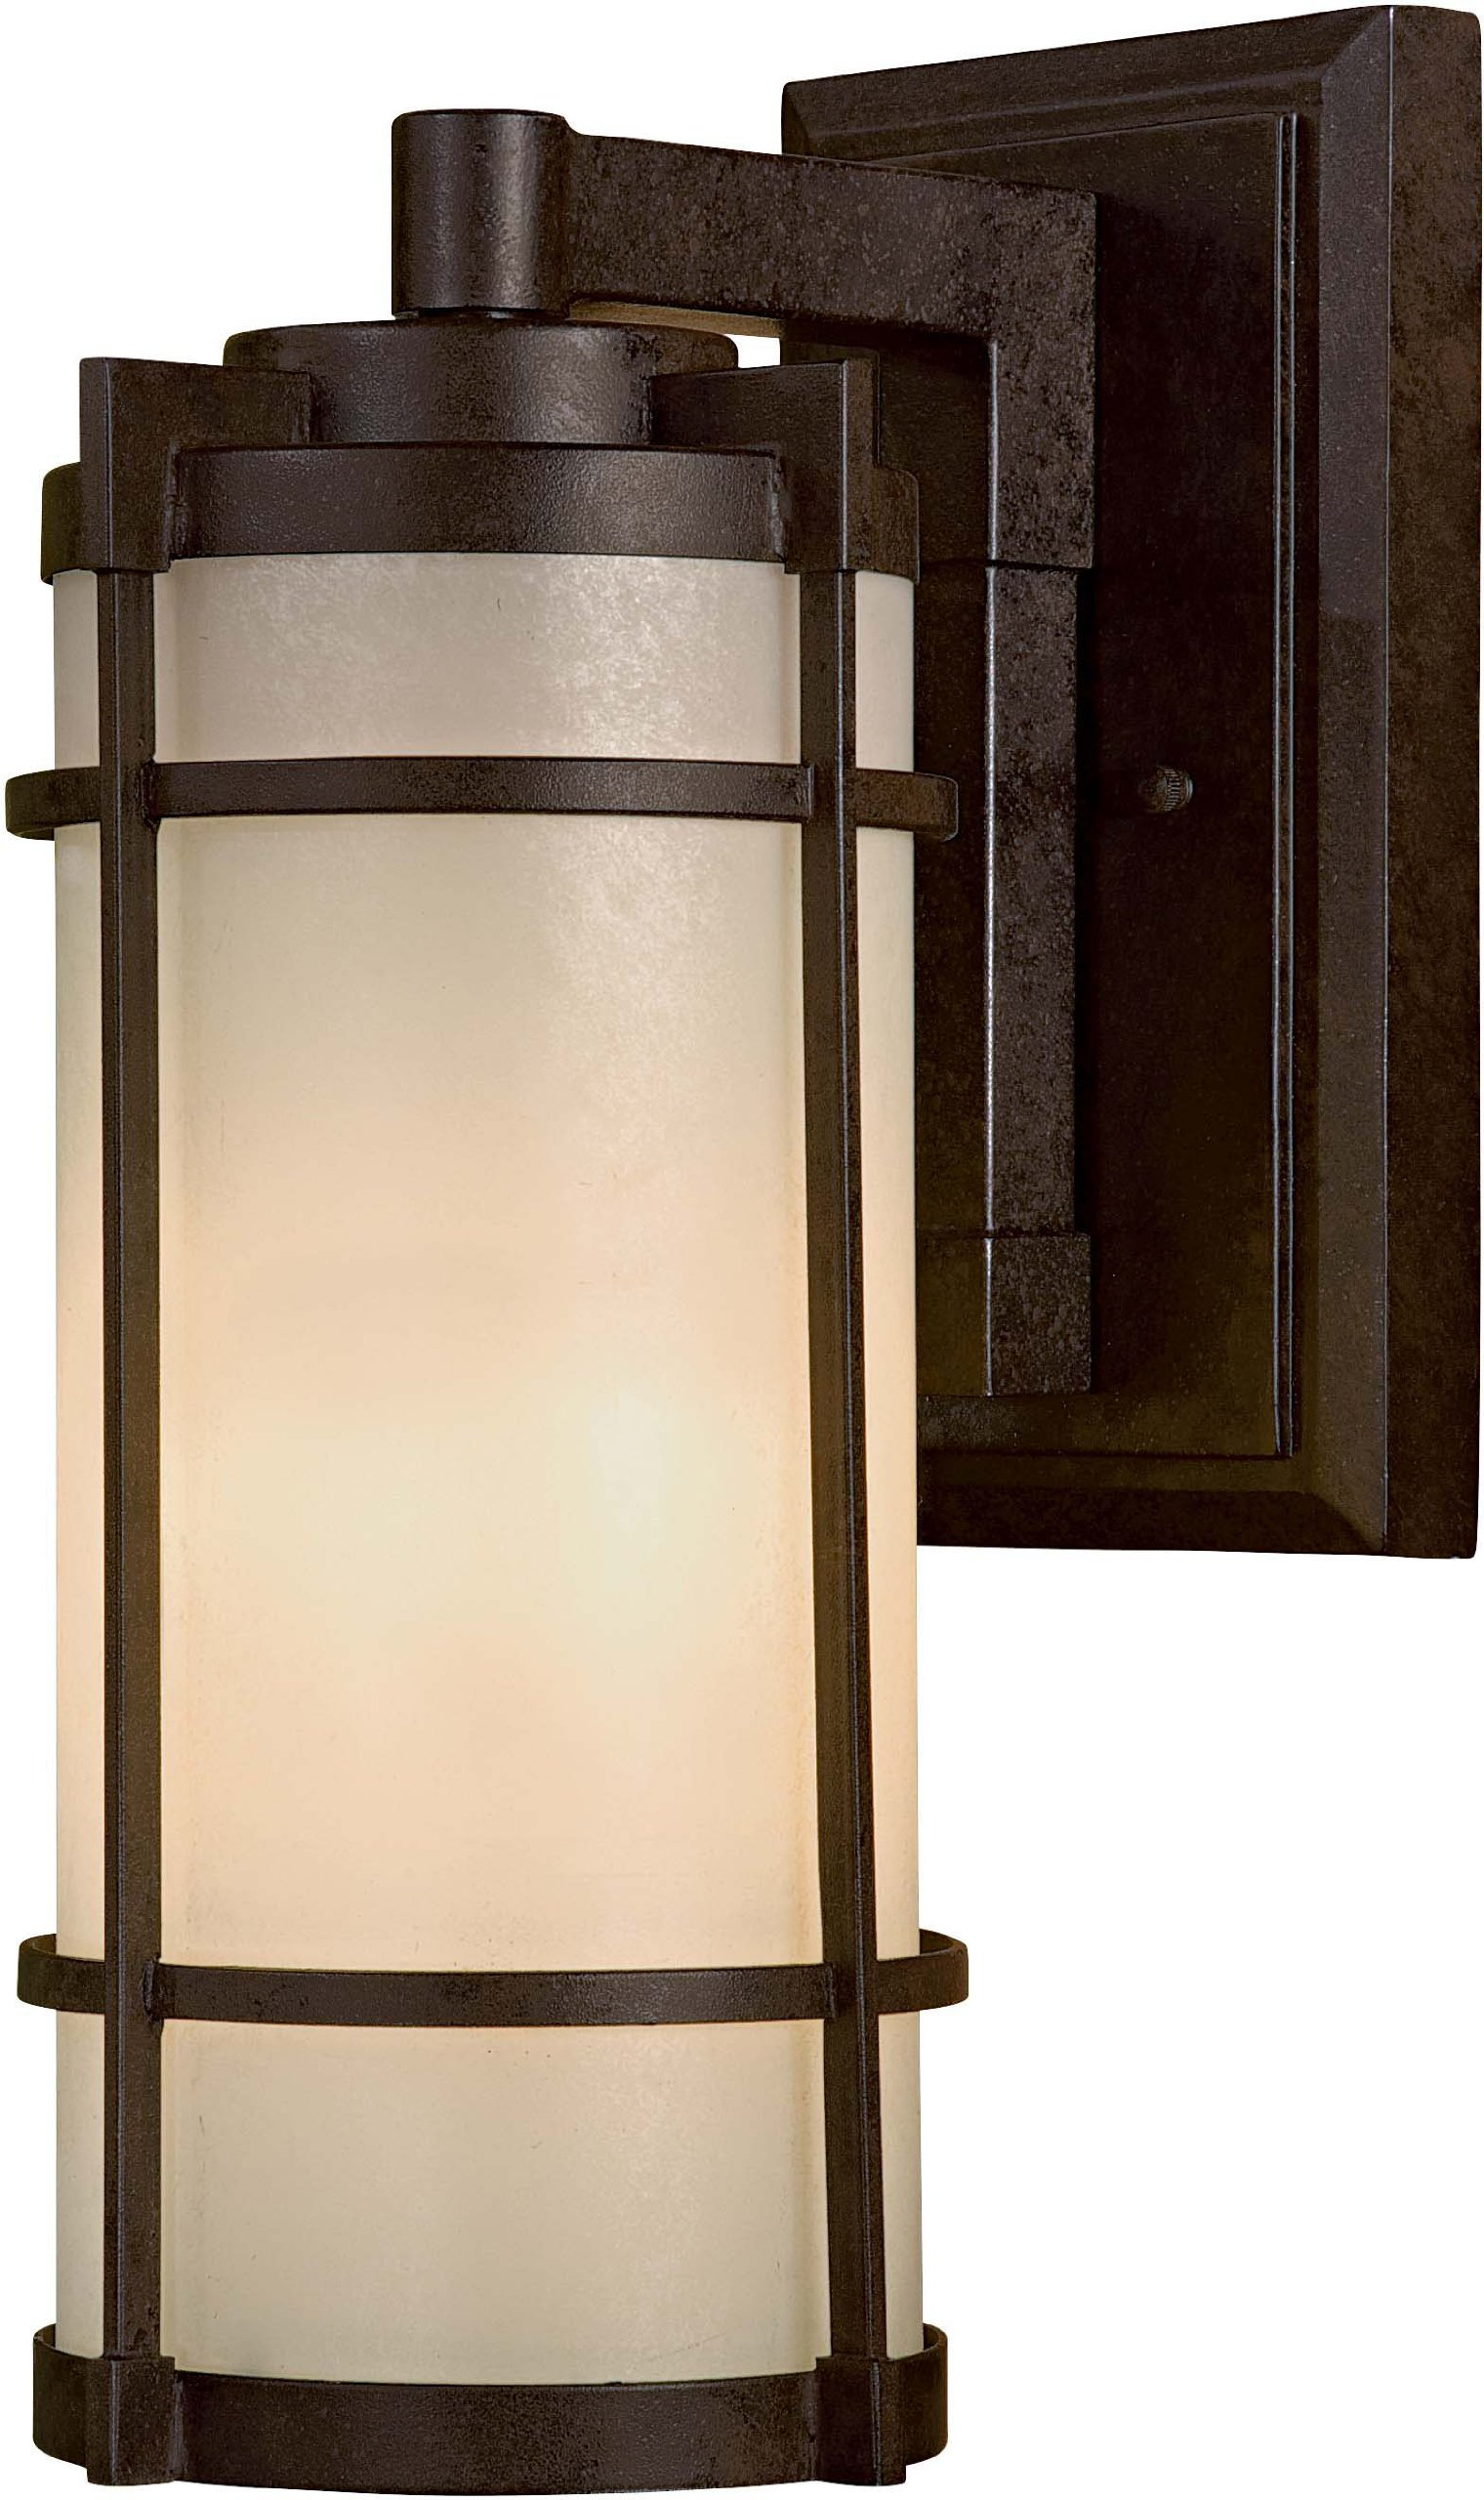 Minka Lavery 72023-A179-PL Andrita Court 1 Light Outdoor Wall Mount, 7'', Textured French Bronze Finish